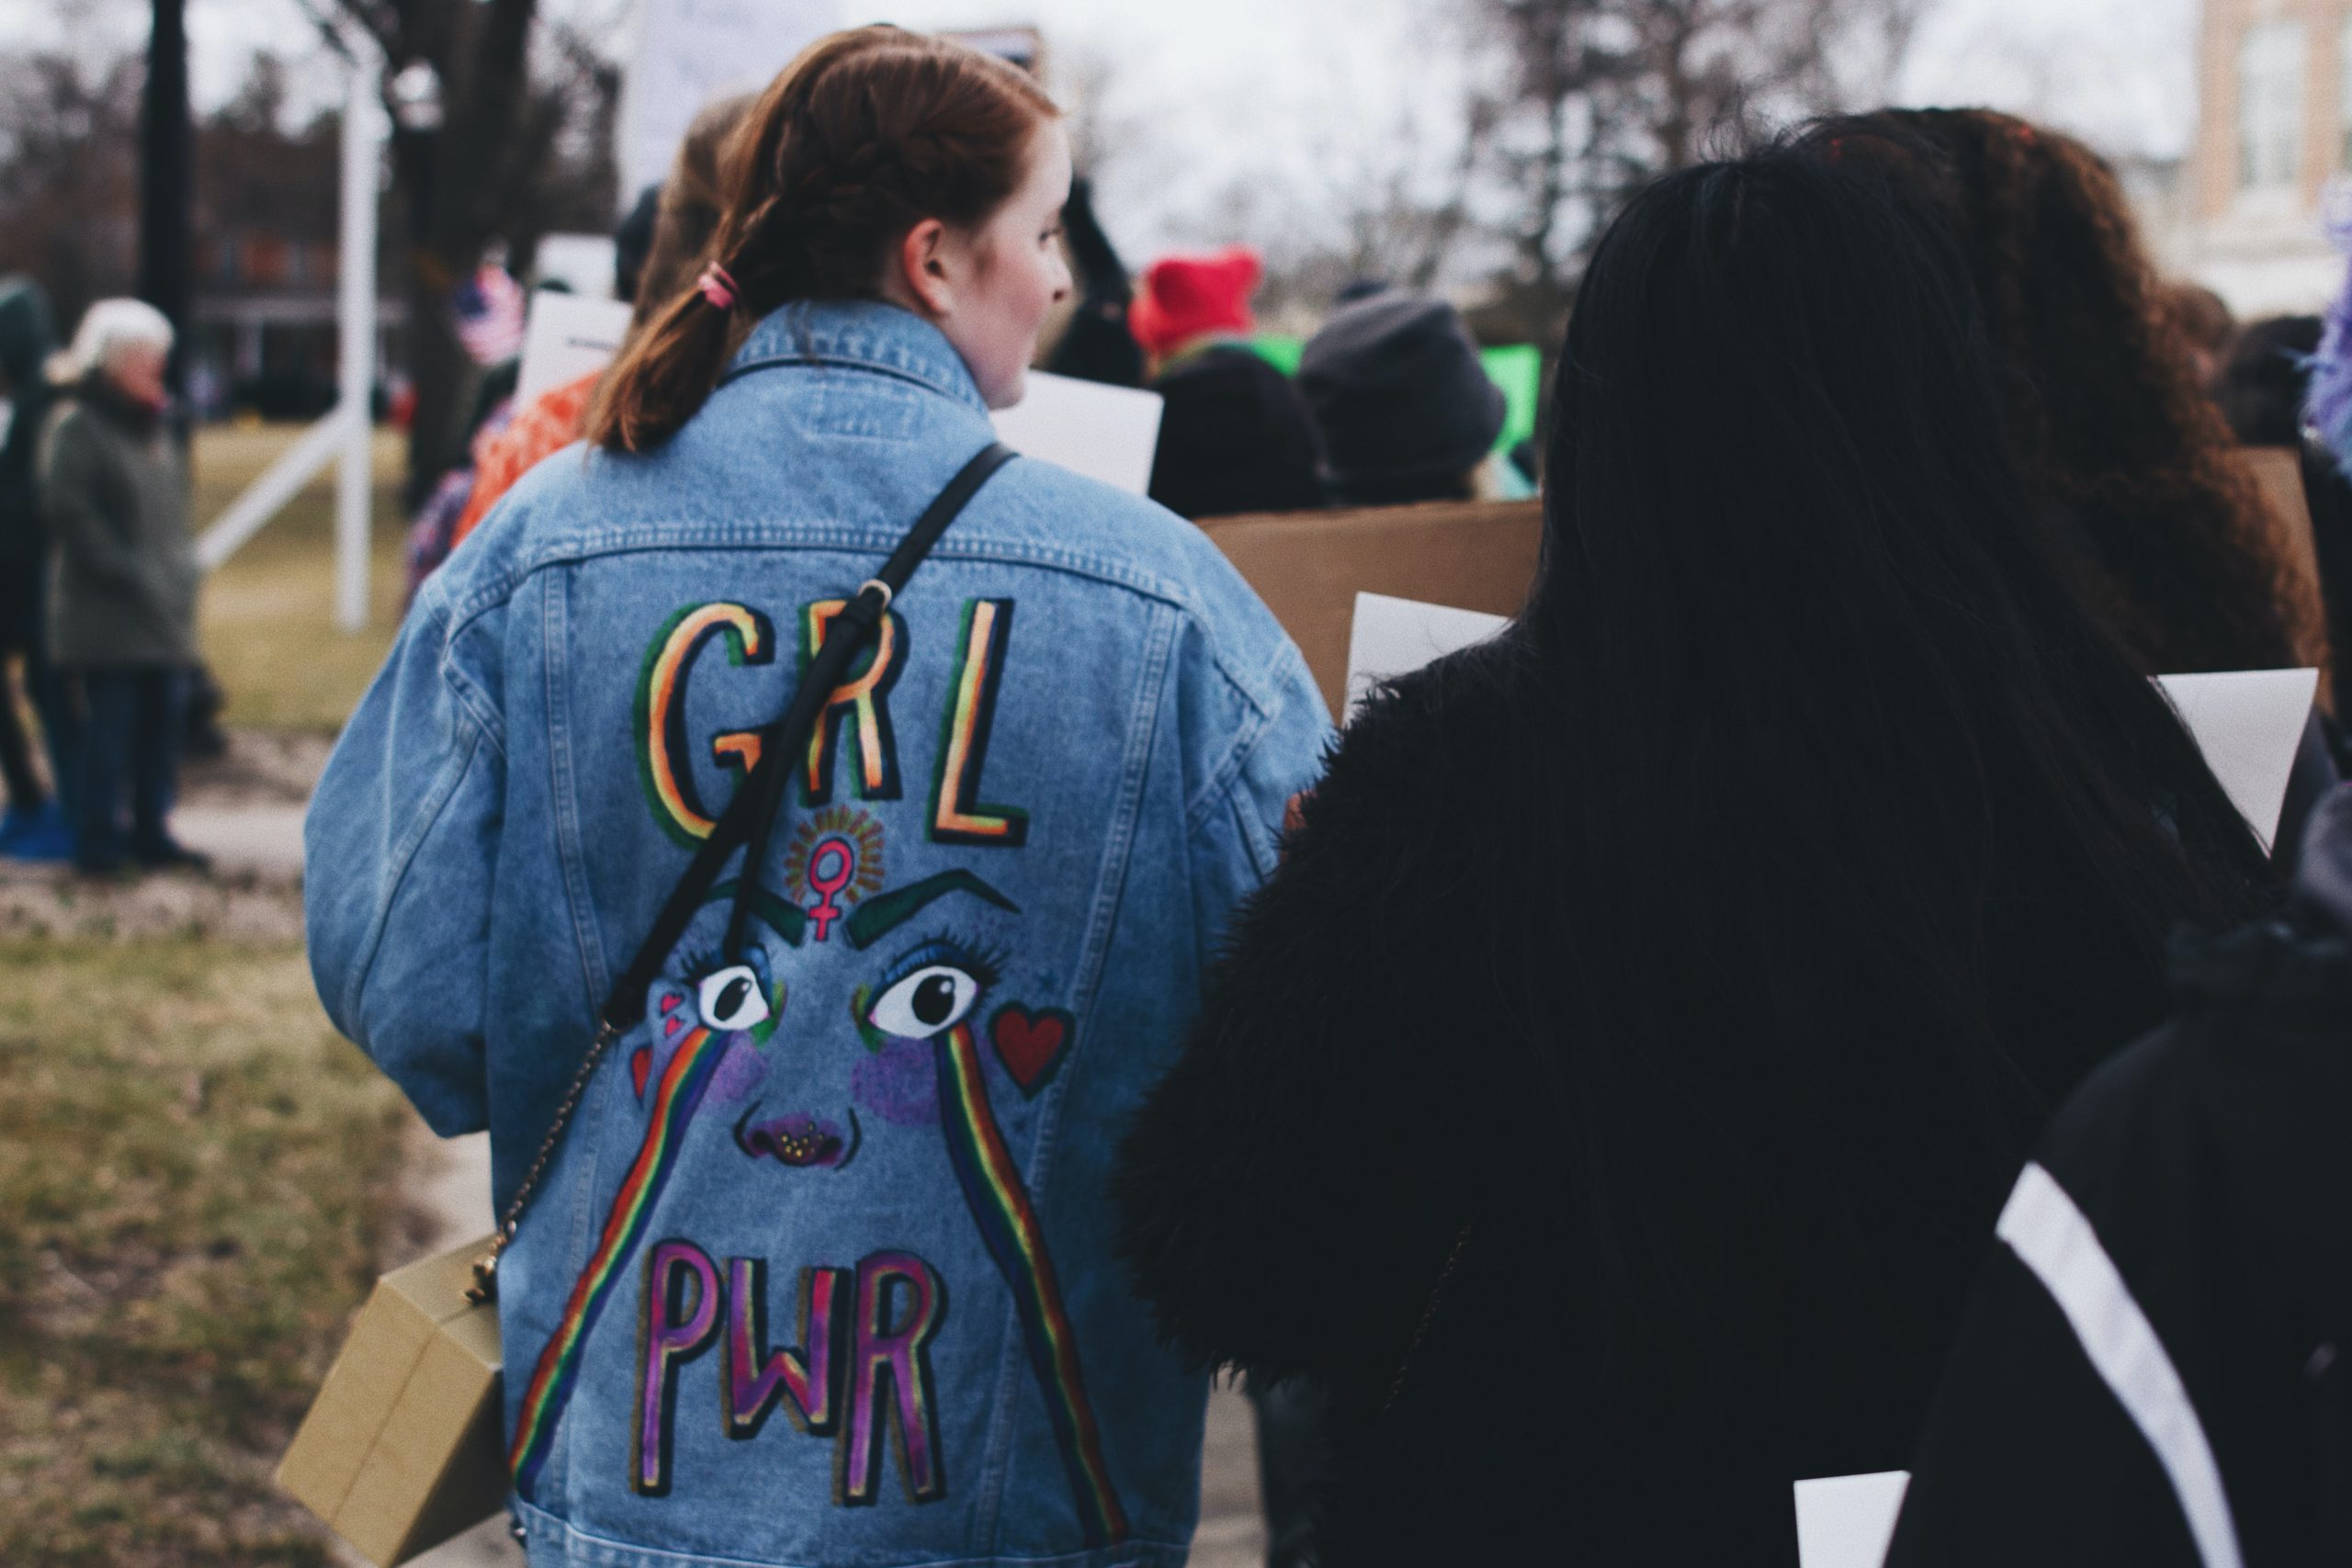 Women at a protest.